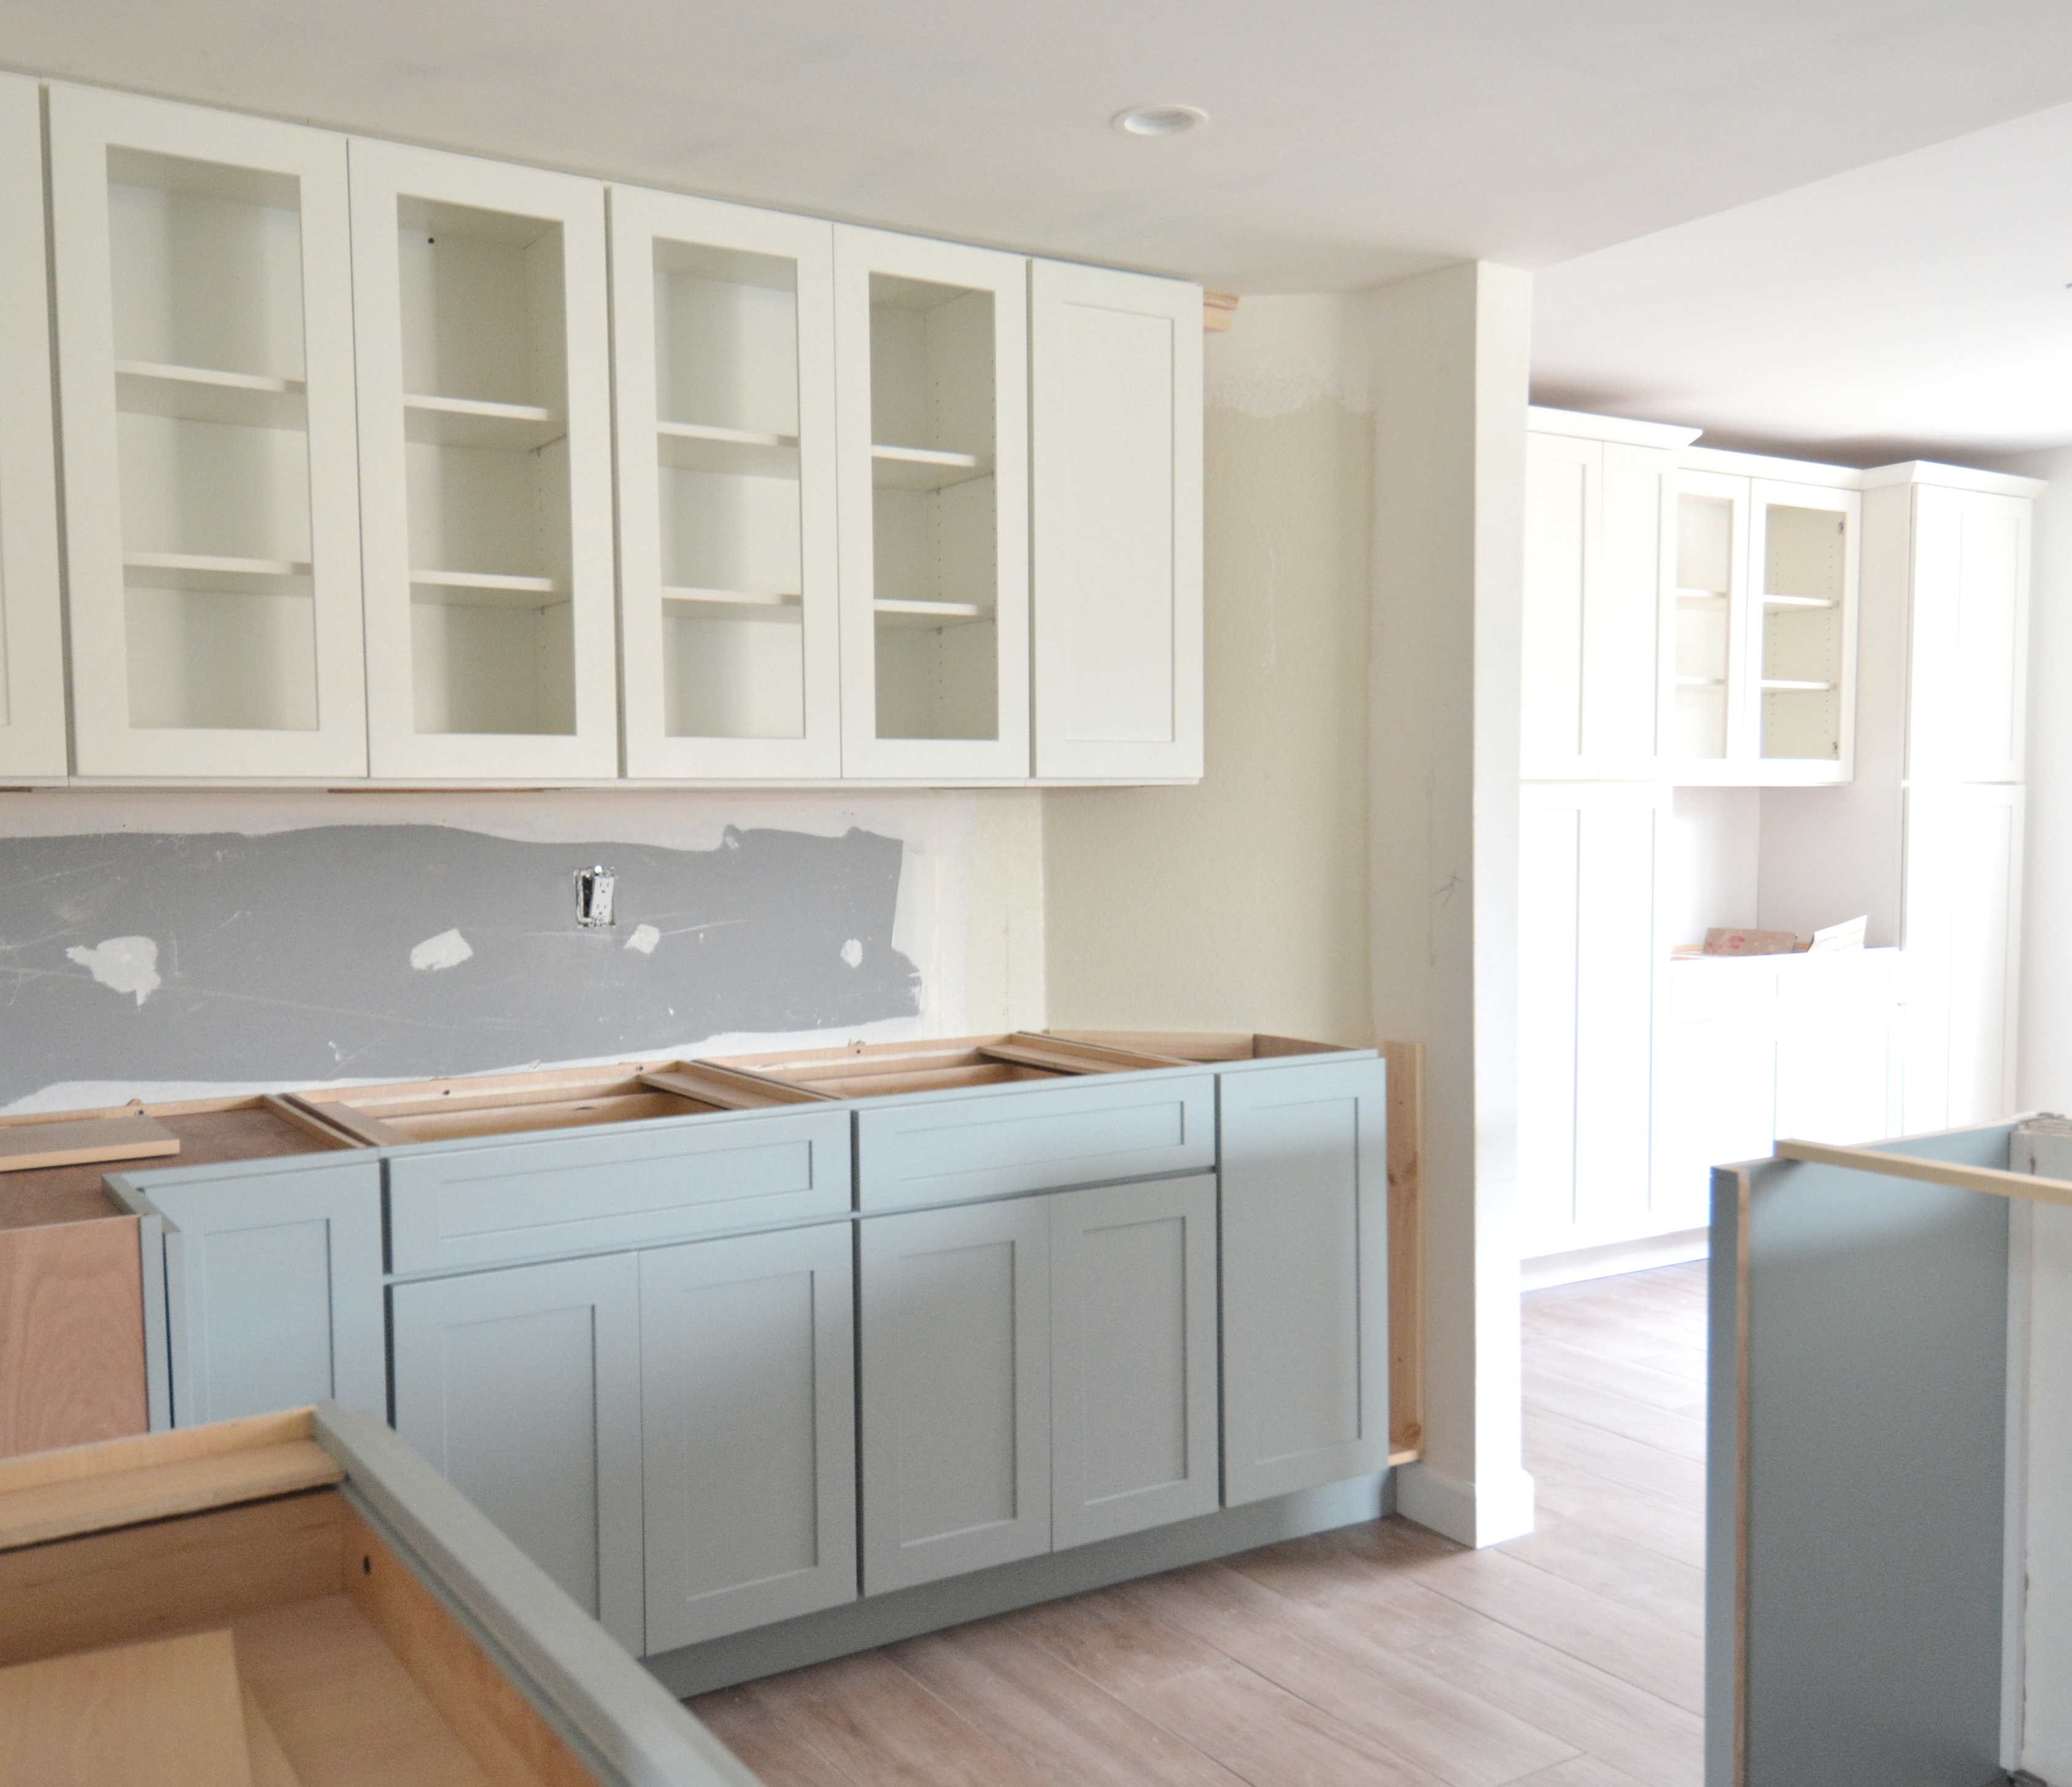 Lower Kitchen Cabinets: Kitchen Remodel: 10 Lessons